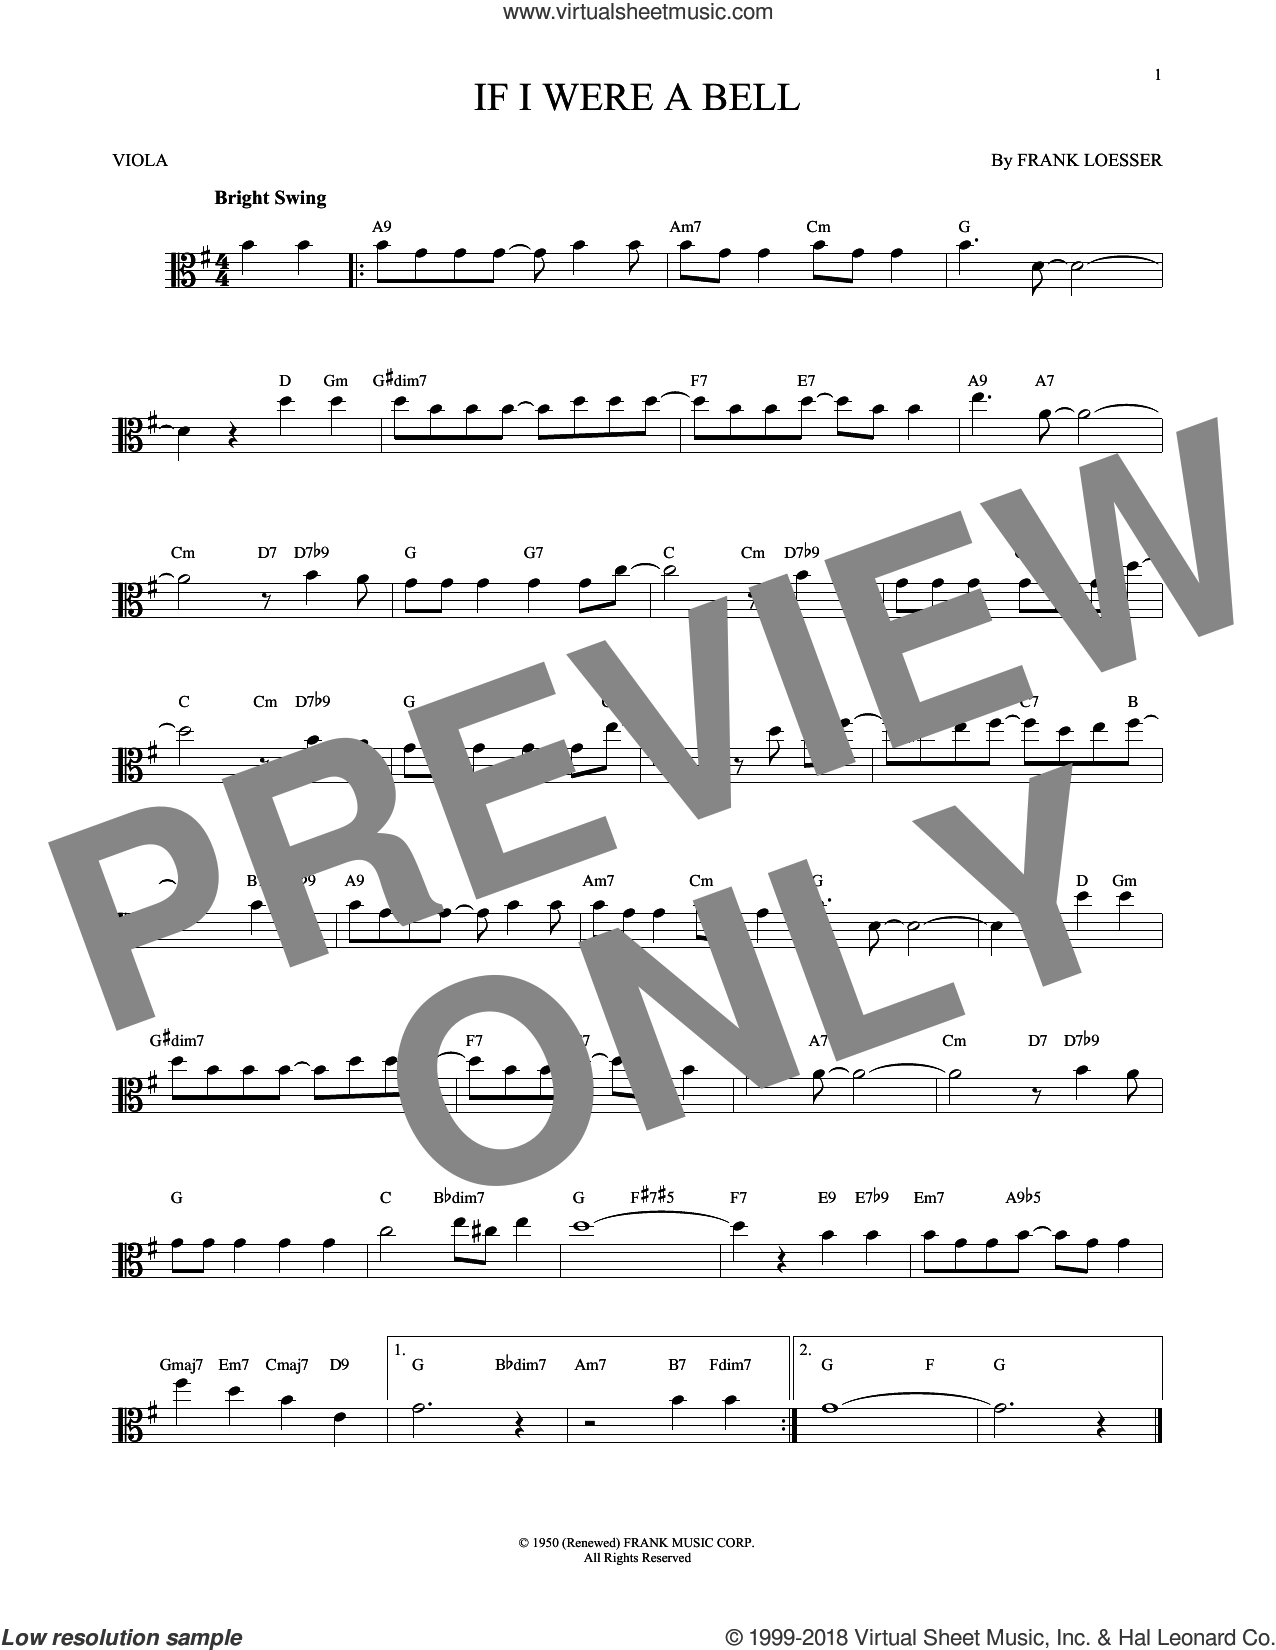 If I Were A Bell sheet music for viola solo by Frank Loesser, intermediate skill level